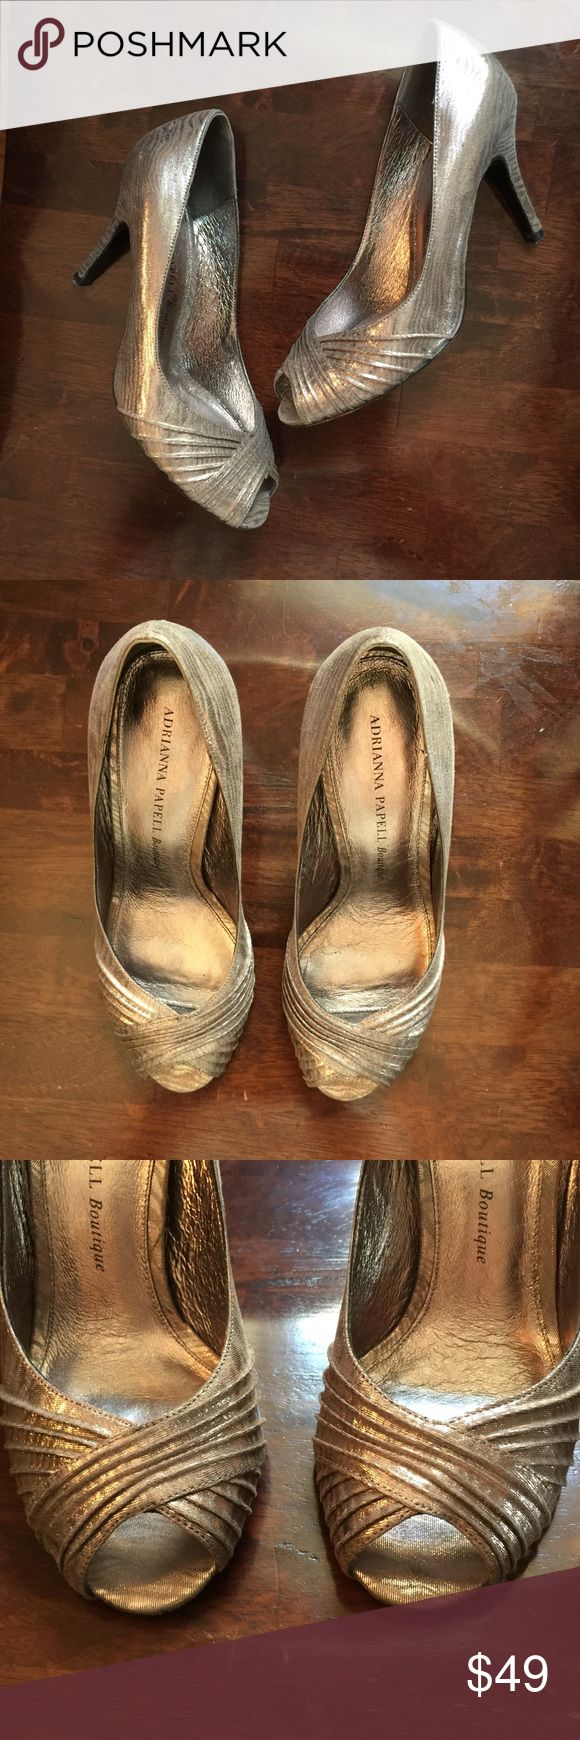 """Adrianna Papell Boutique Grand Metallic Satin Pump A perfect shoe for wedding season! Silver open toed Satin pumps that will pair perfectly with any dress. Too cute!! Leather sock, lining, and sole. 3.5"""" heel Adrianna Papell Shoes Heels"""